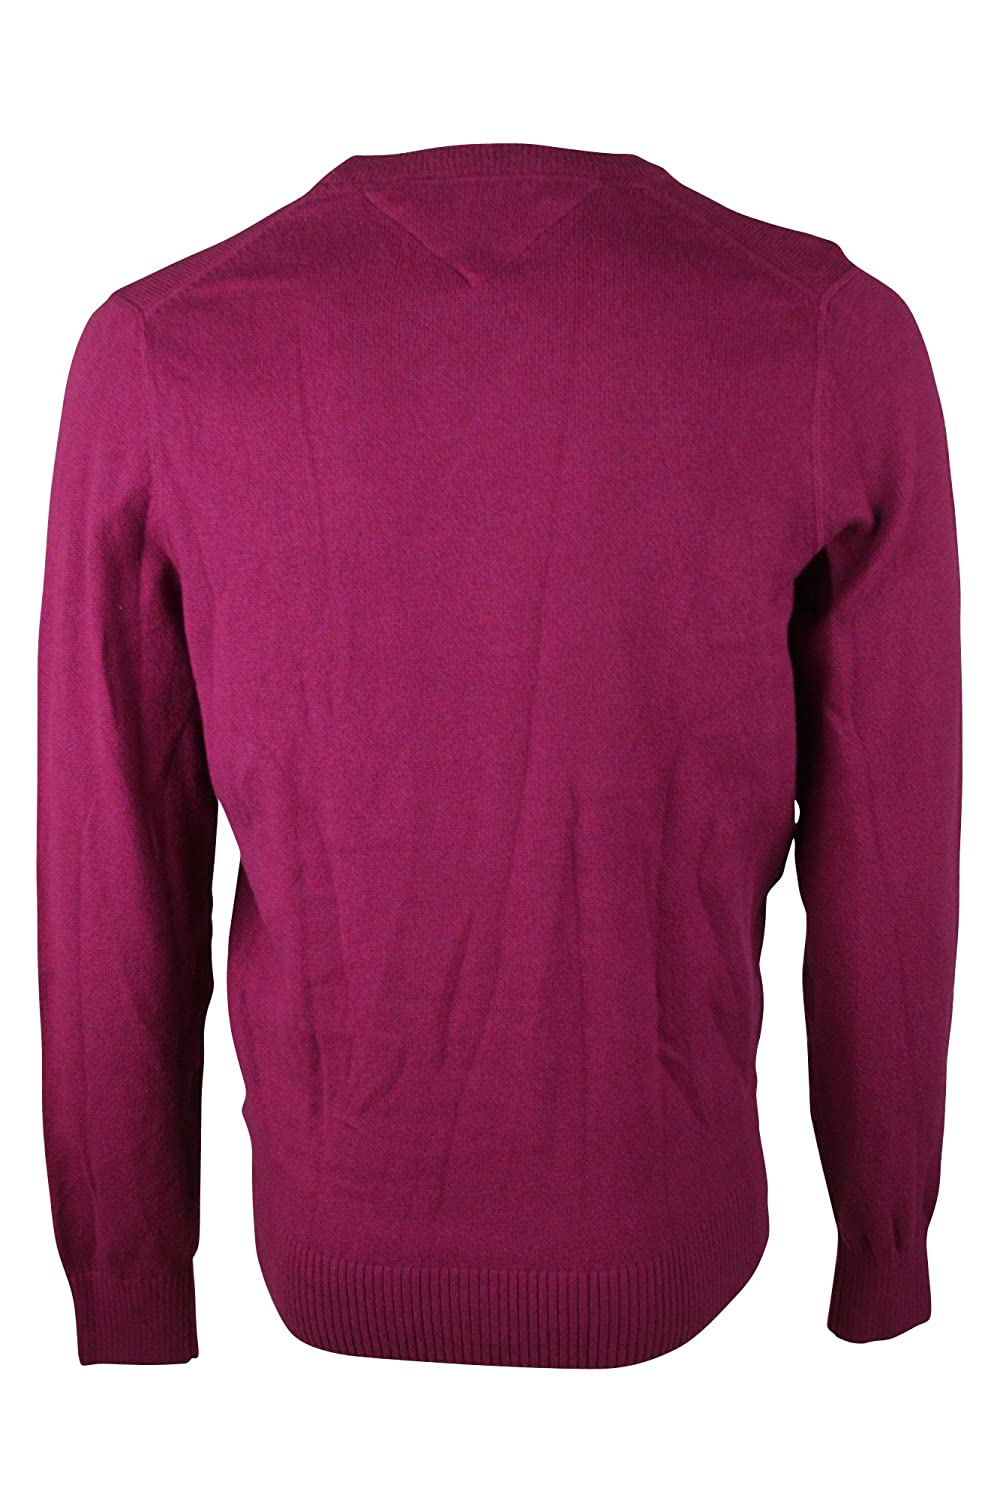 Tommy Hilfiger Men's Crew Neck Sweater Maroon XXL at Amazon Men's ...